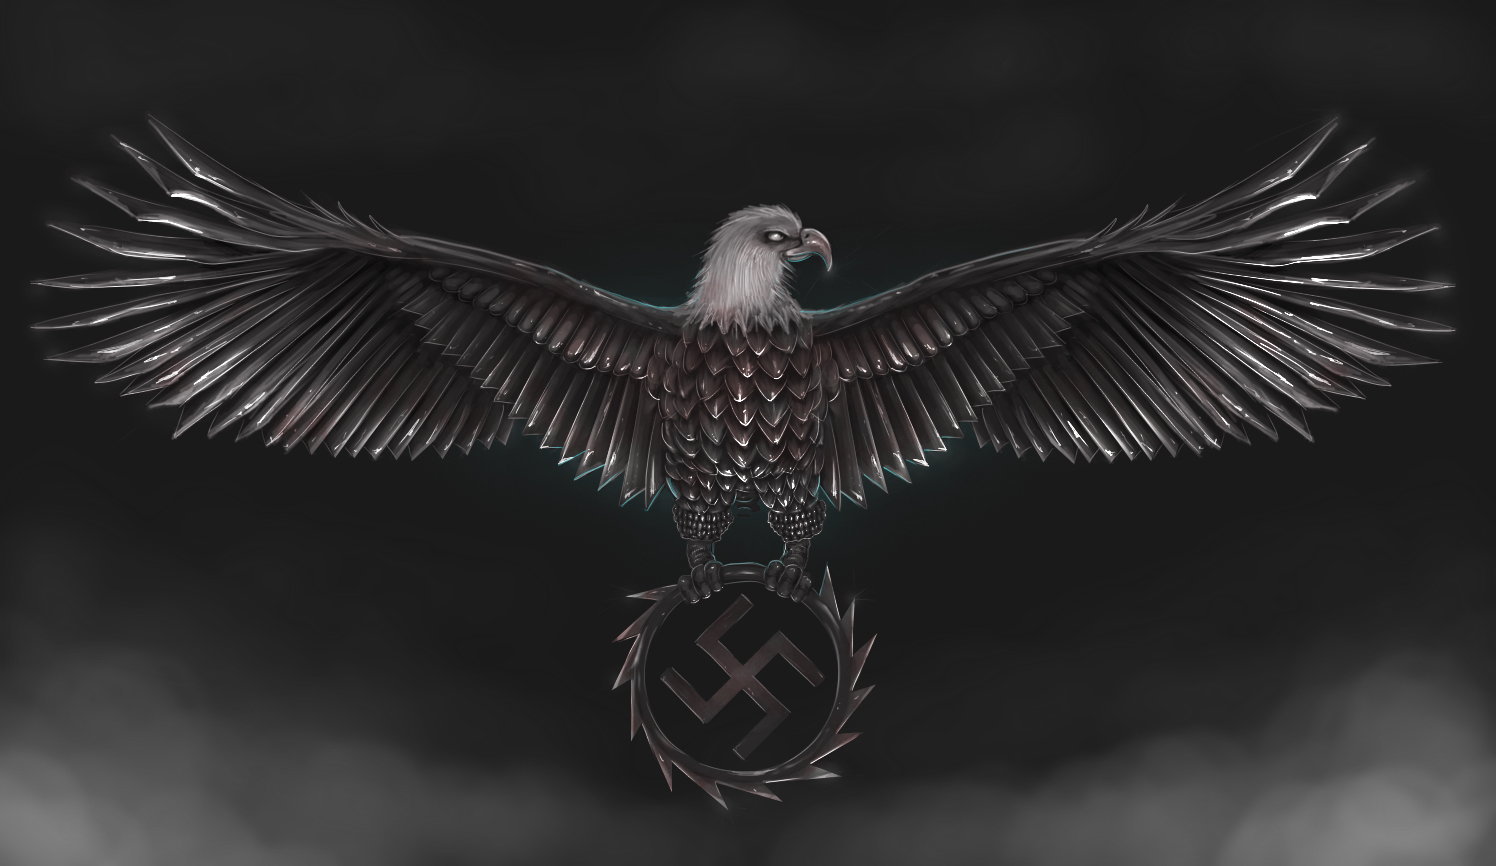 Iron Eagle Symbol Mean...